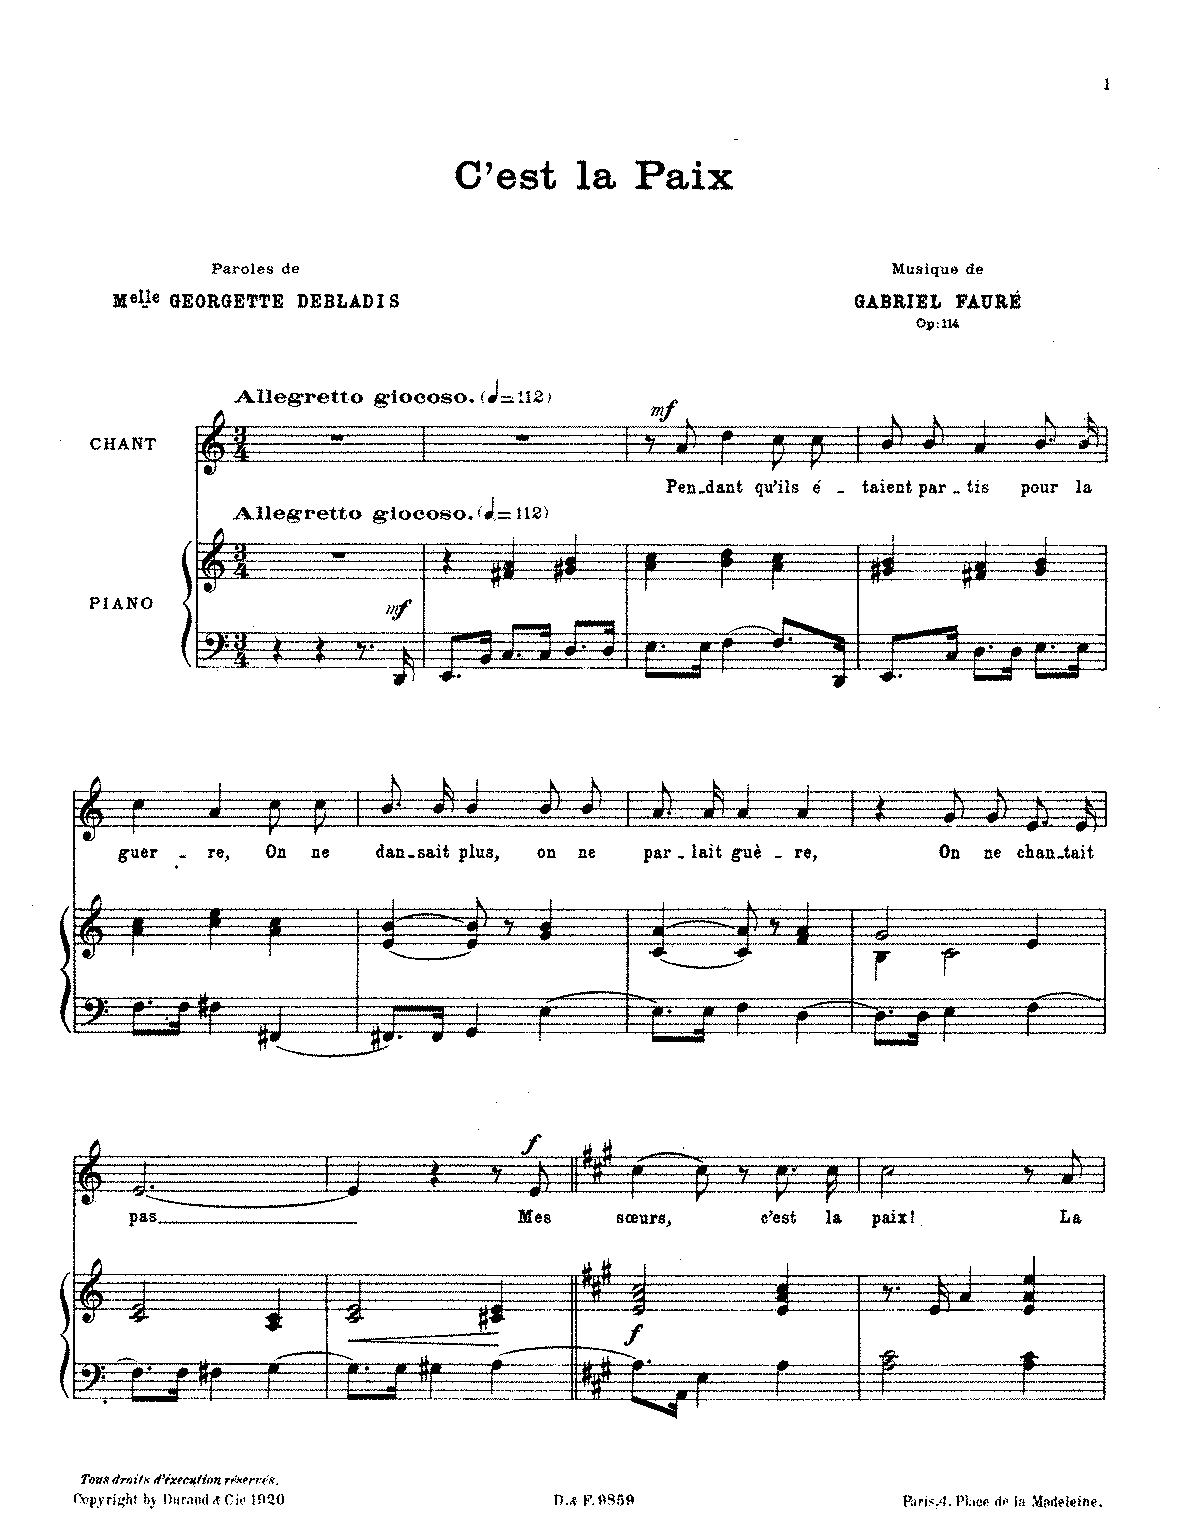 PMLP59448-Fauré - Cest la Paix, Op. 114 (voice and piano).pdf